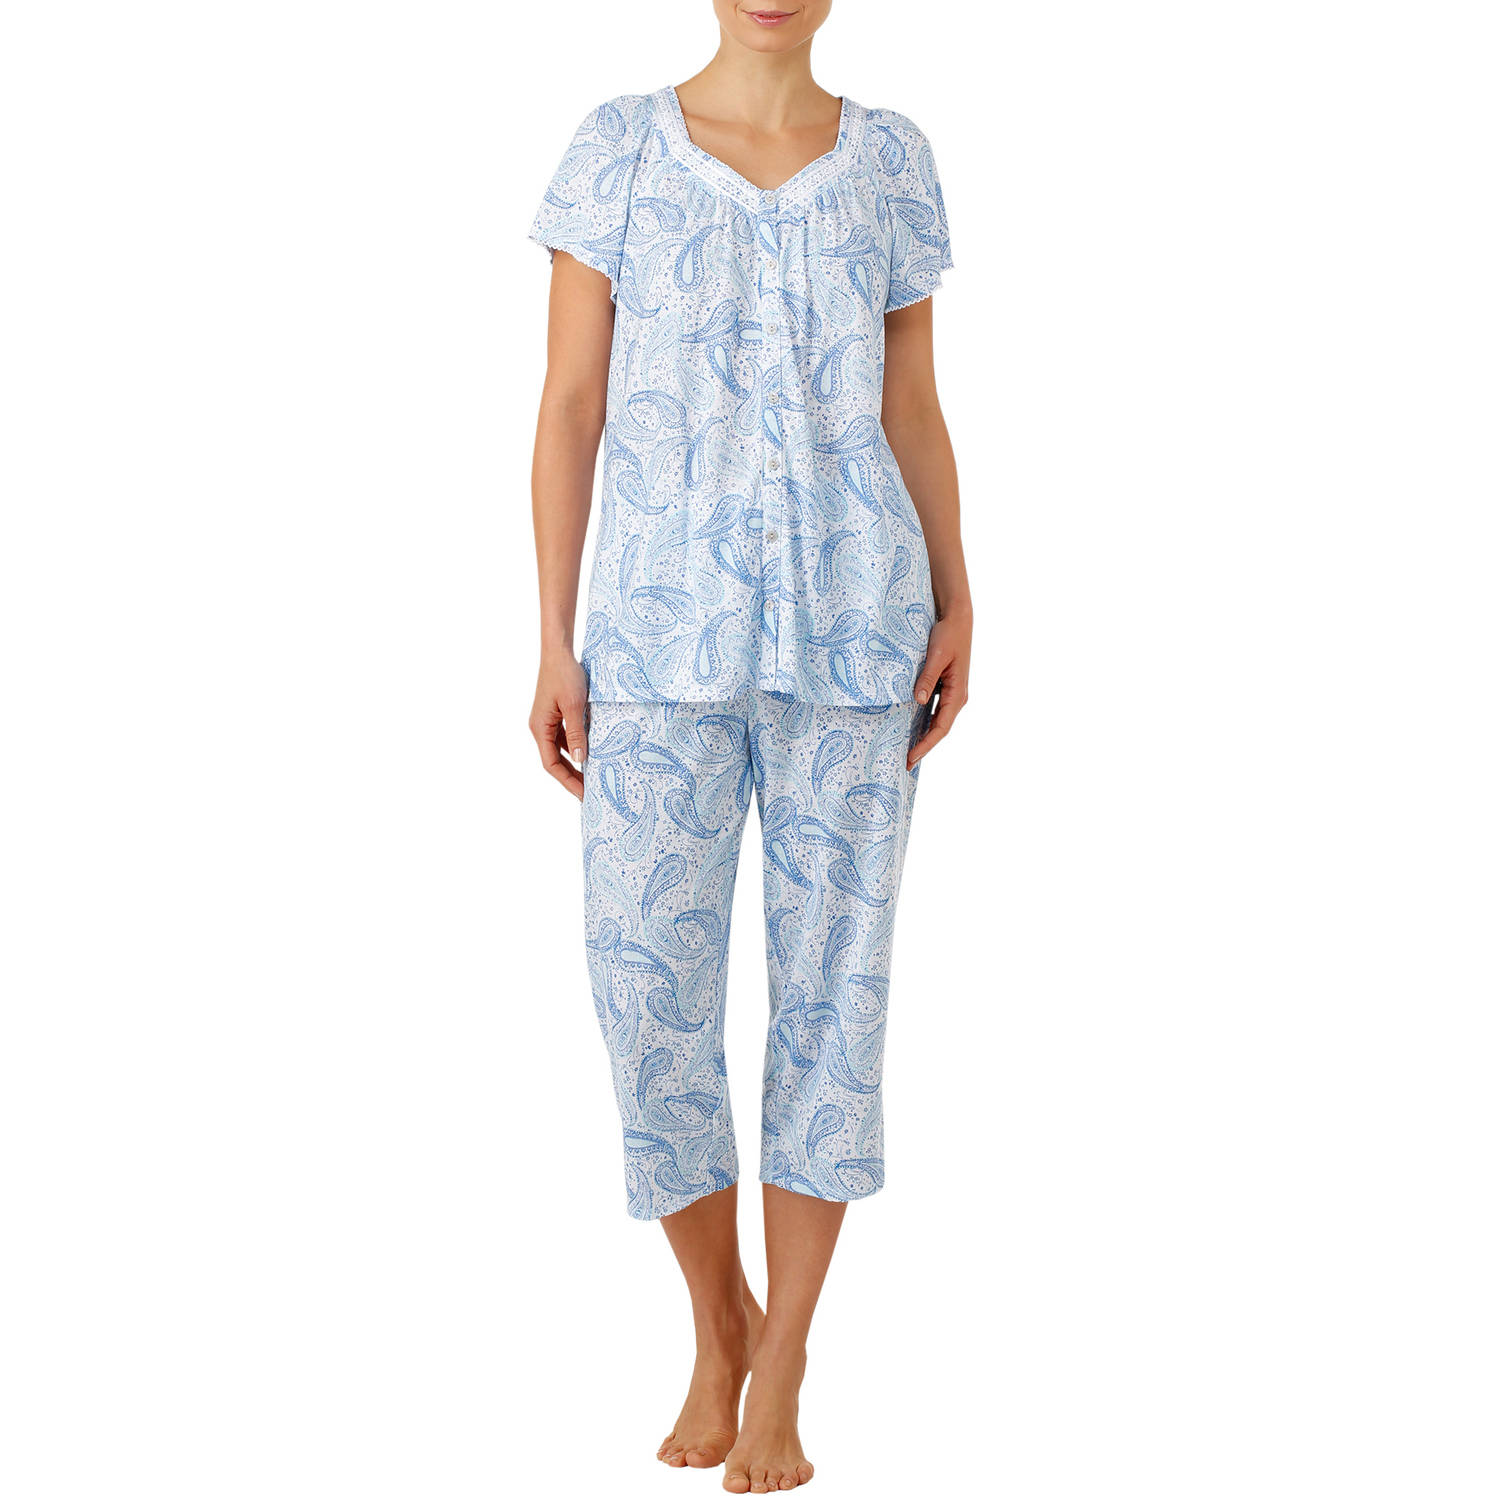 Find great deals on eBay for junior sleepwear. Shop with confidence.